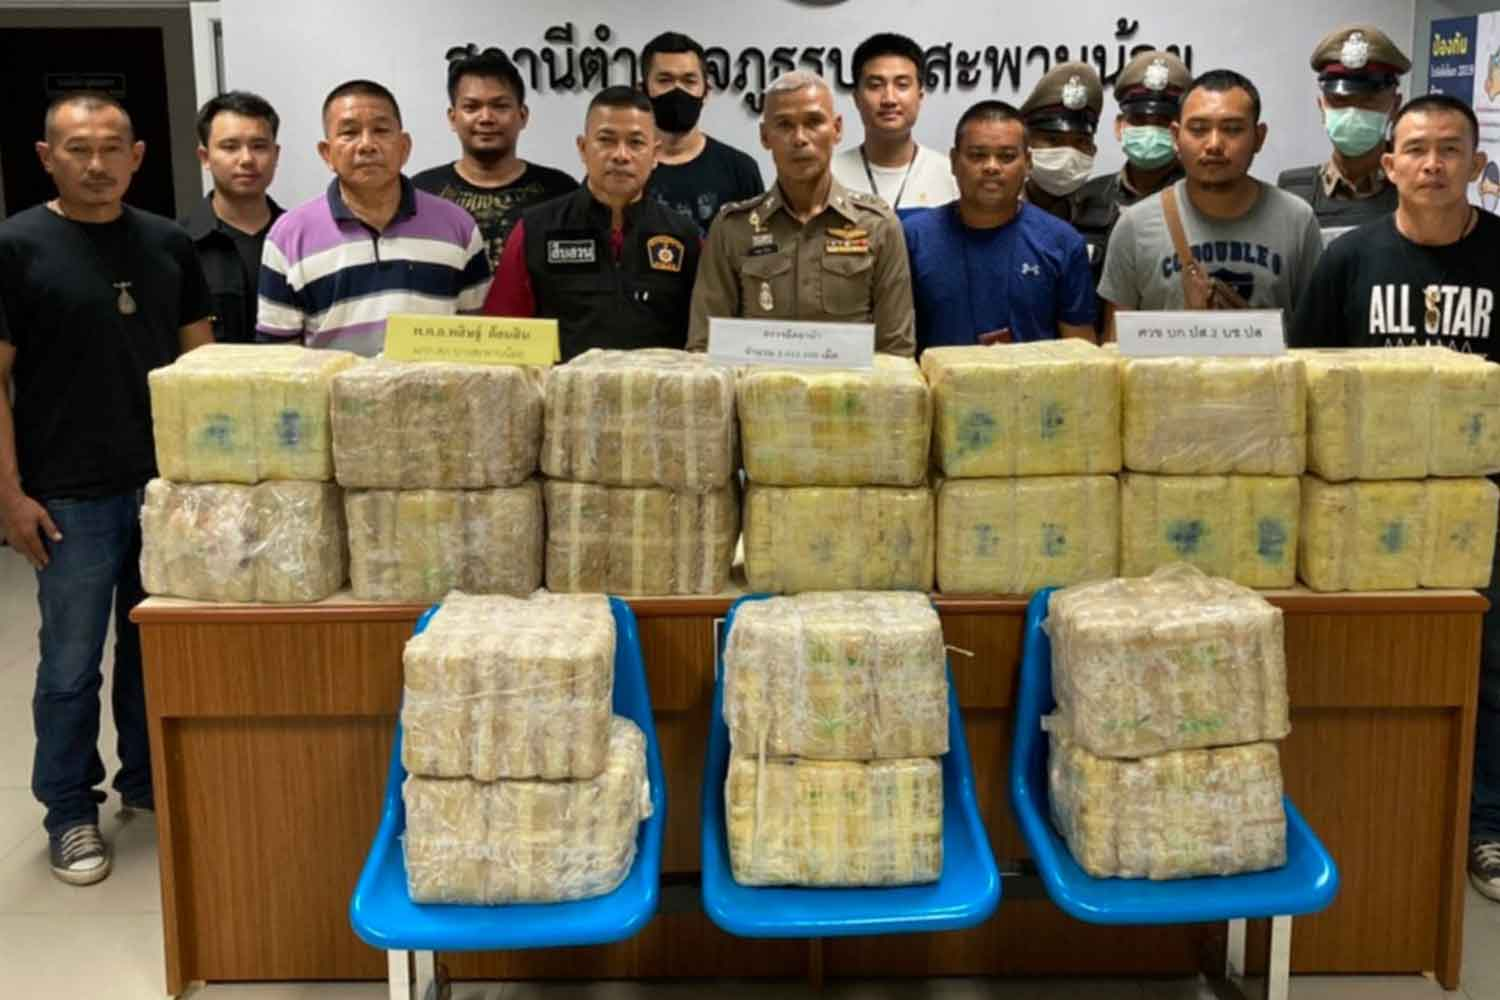 Police put on display packs of methamphetamine pills, about 2 million in total, seized from an abandoned pickup truck at a petrol station in Bang Saphan Noy district, Prachuap Khiri Khan province, on Tuesday night. (Photo by Chaiwat Satyaem)